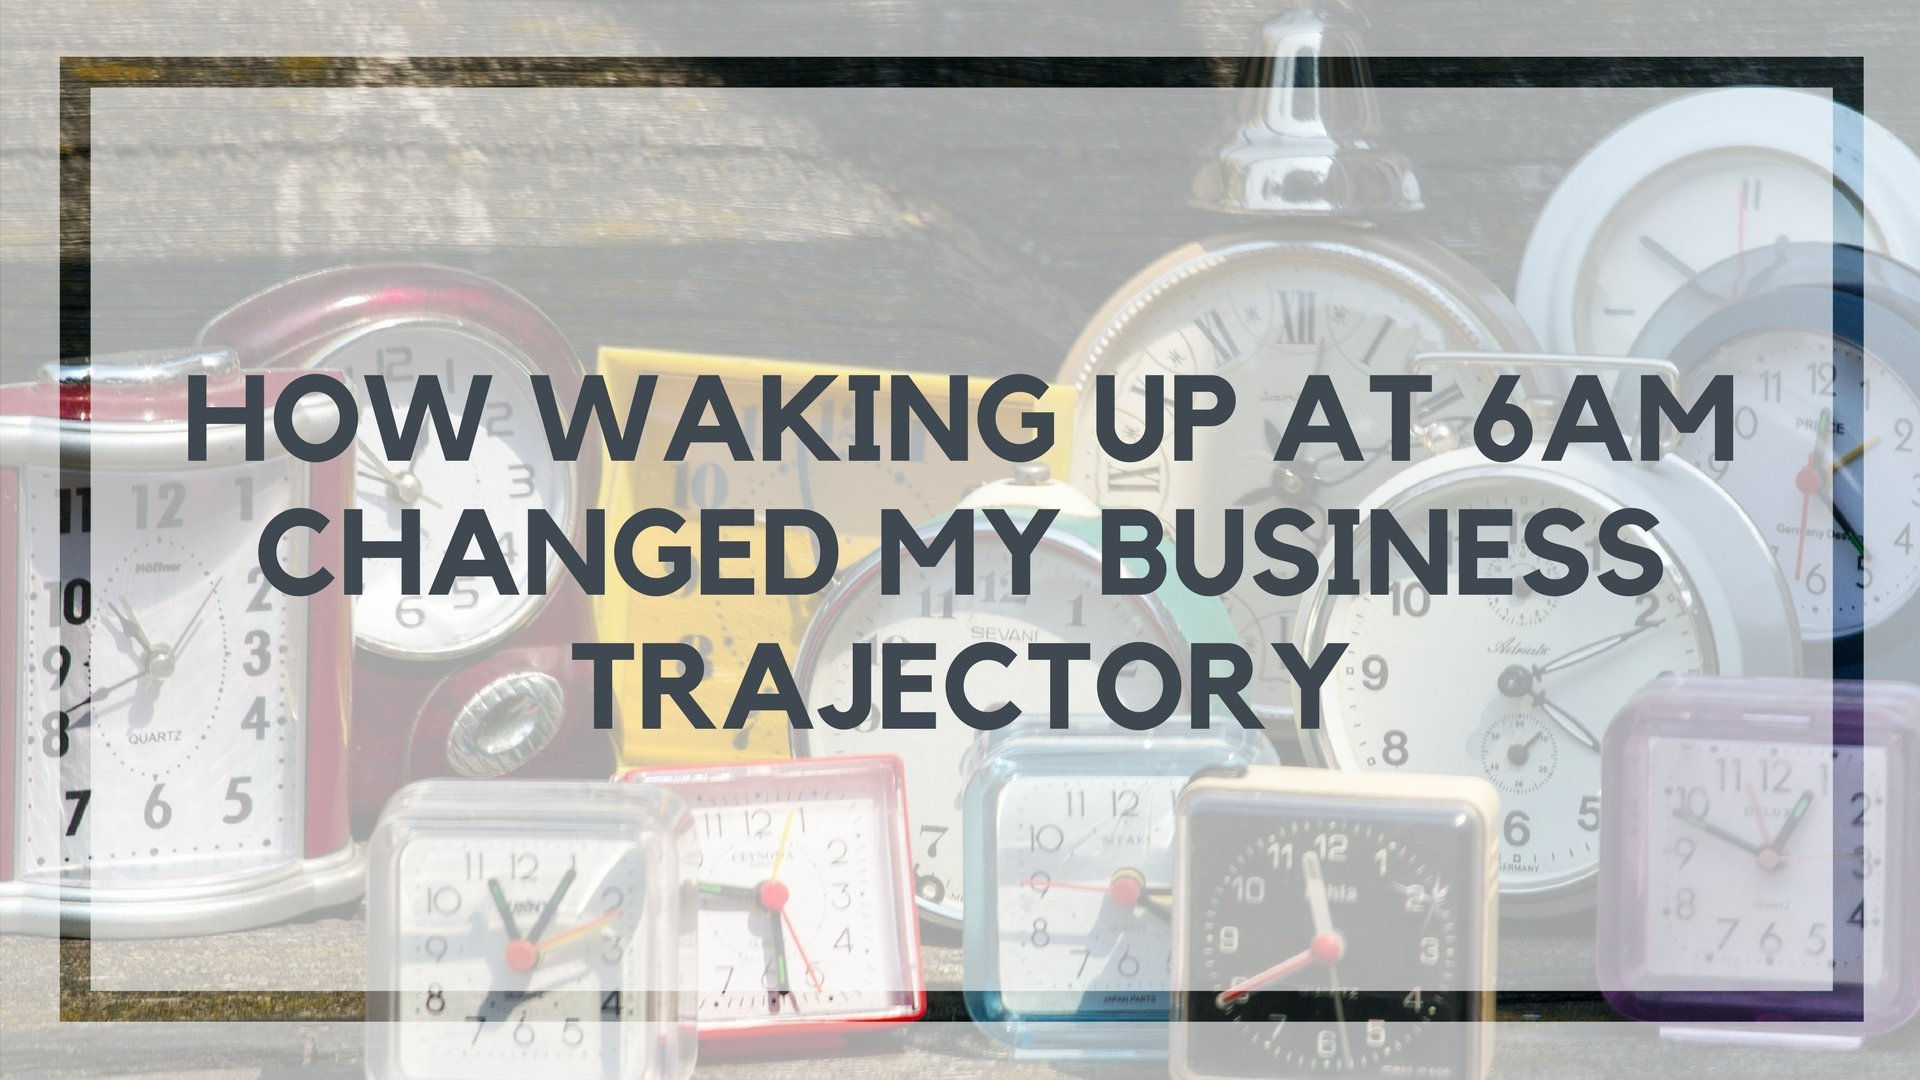 How Waking Up at 6am Everyday for 2 Weeks Changed My Business Trajectory